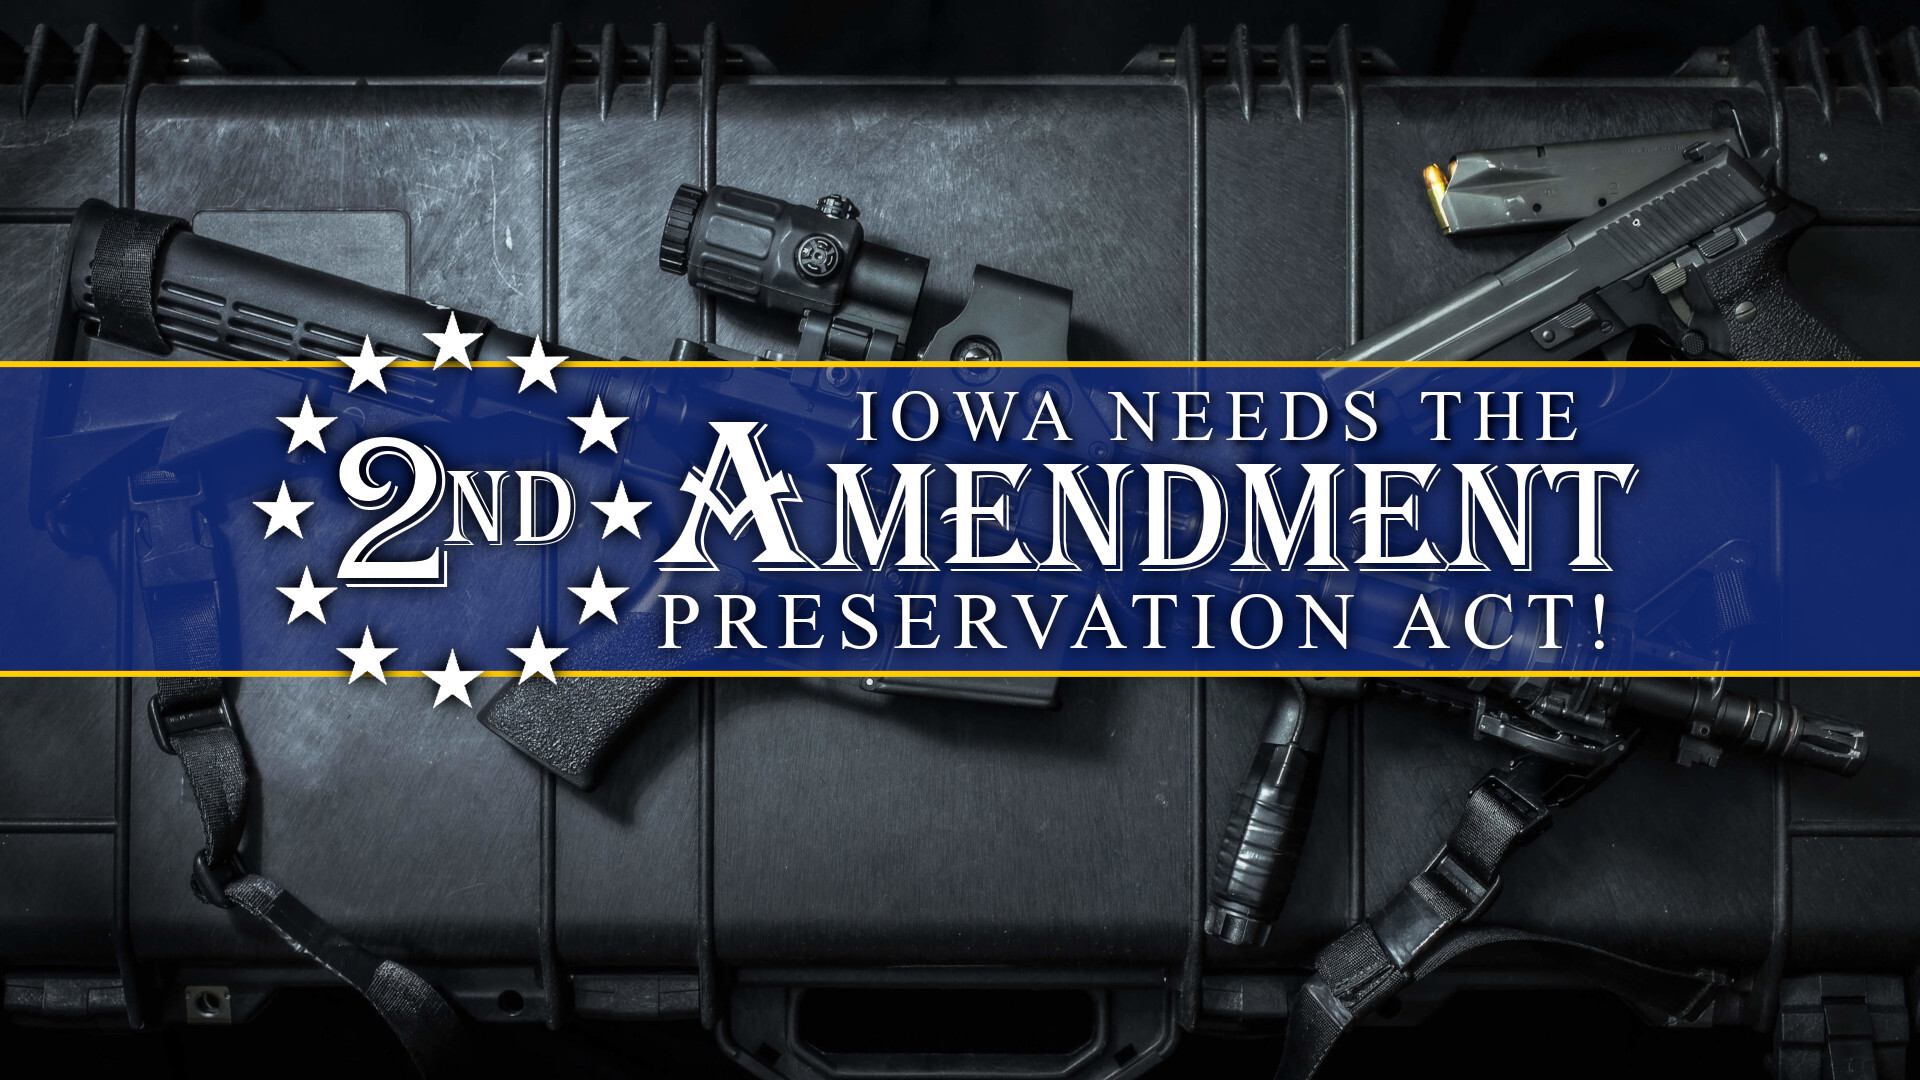 Iowans Need the Second Amendment Preservation Act!